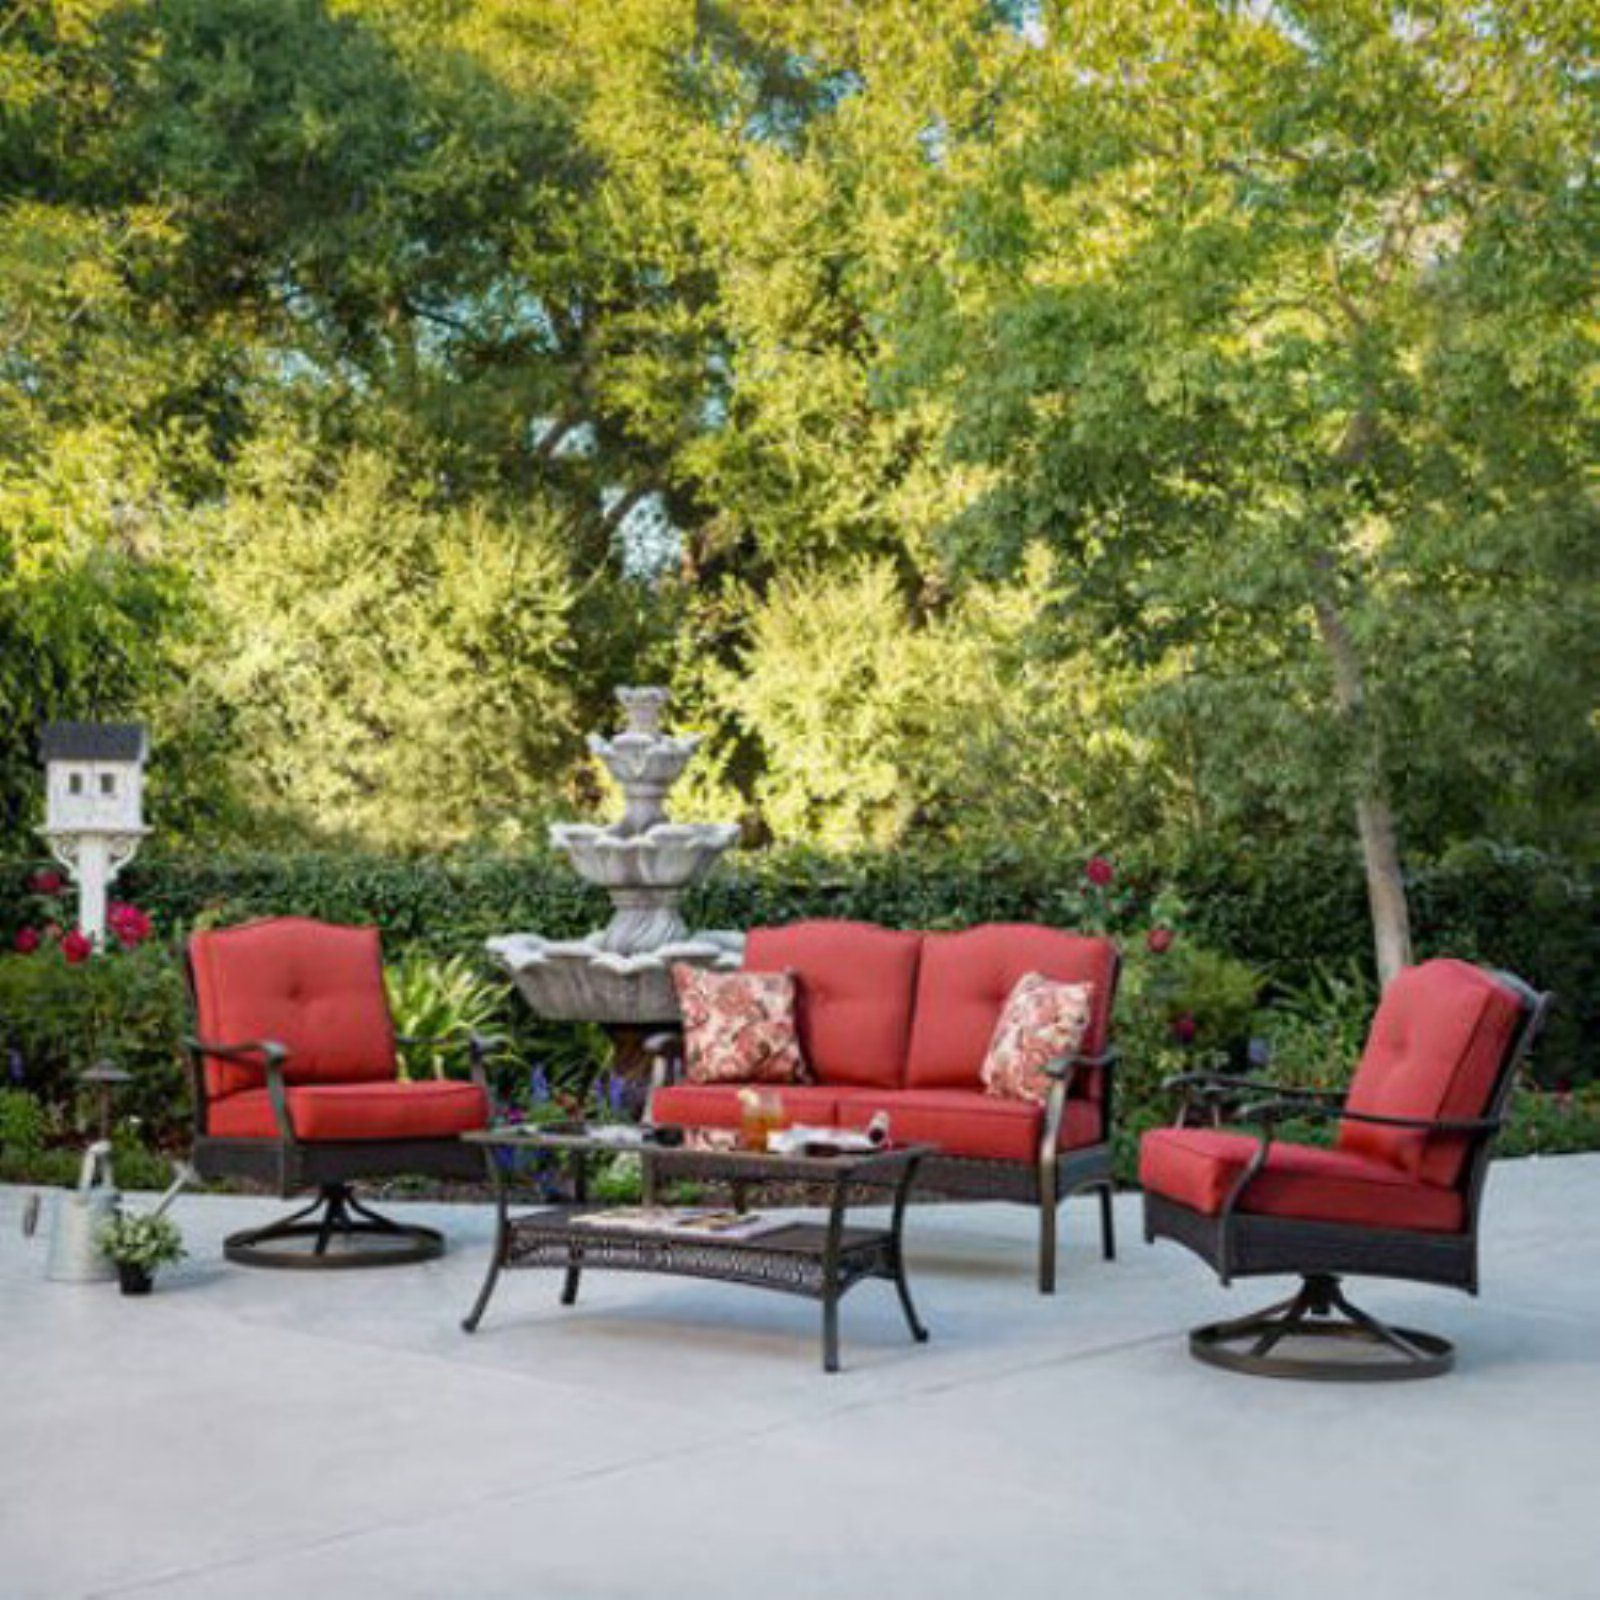 Outdoor Better Homes Gardens Providence 4 Piece Patio Conversation Set Red